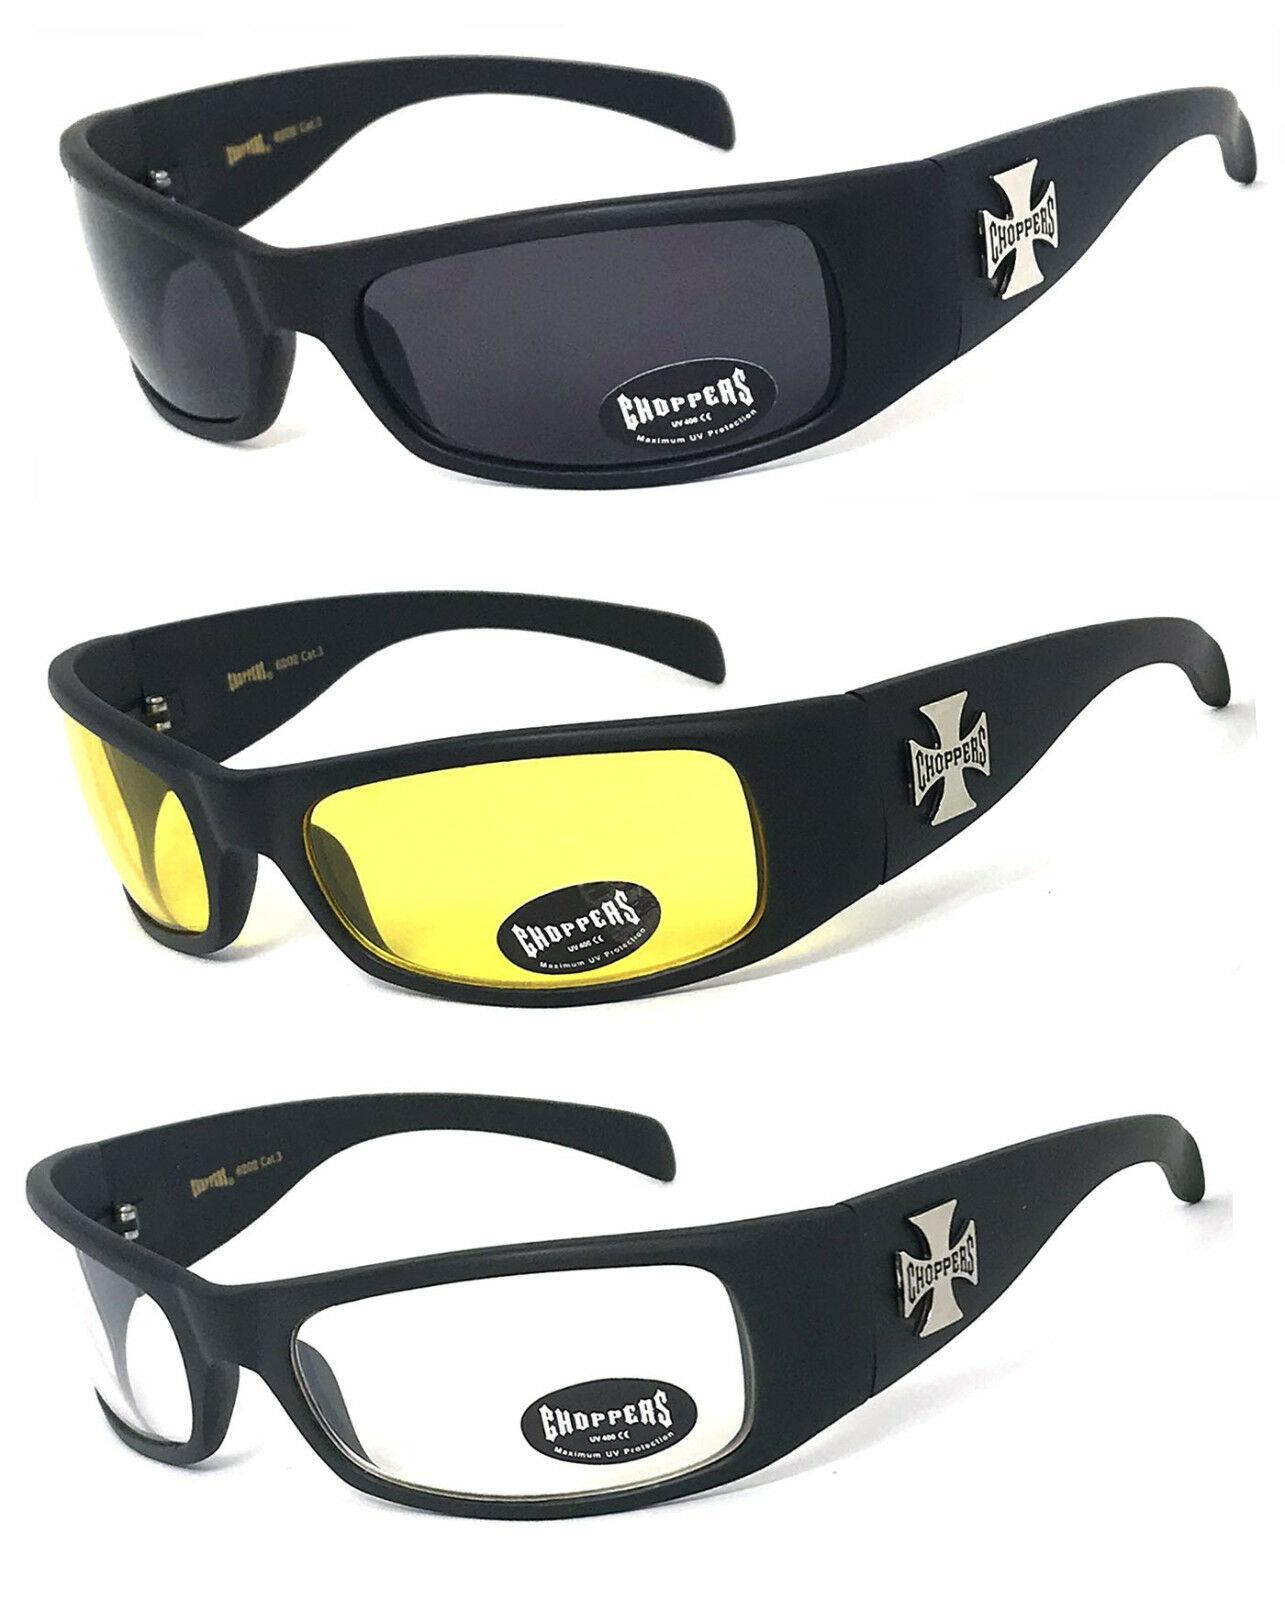 3 PAIR COMBO Chopper Sunglasses Motorcycle Glasses Smoke Yellow /& Clear Lens C50